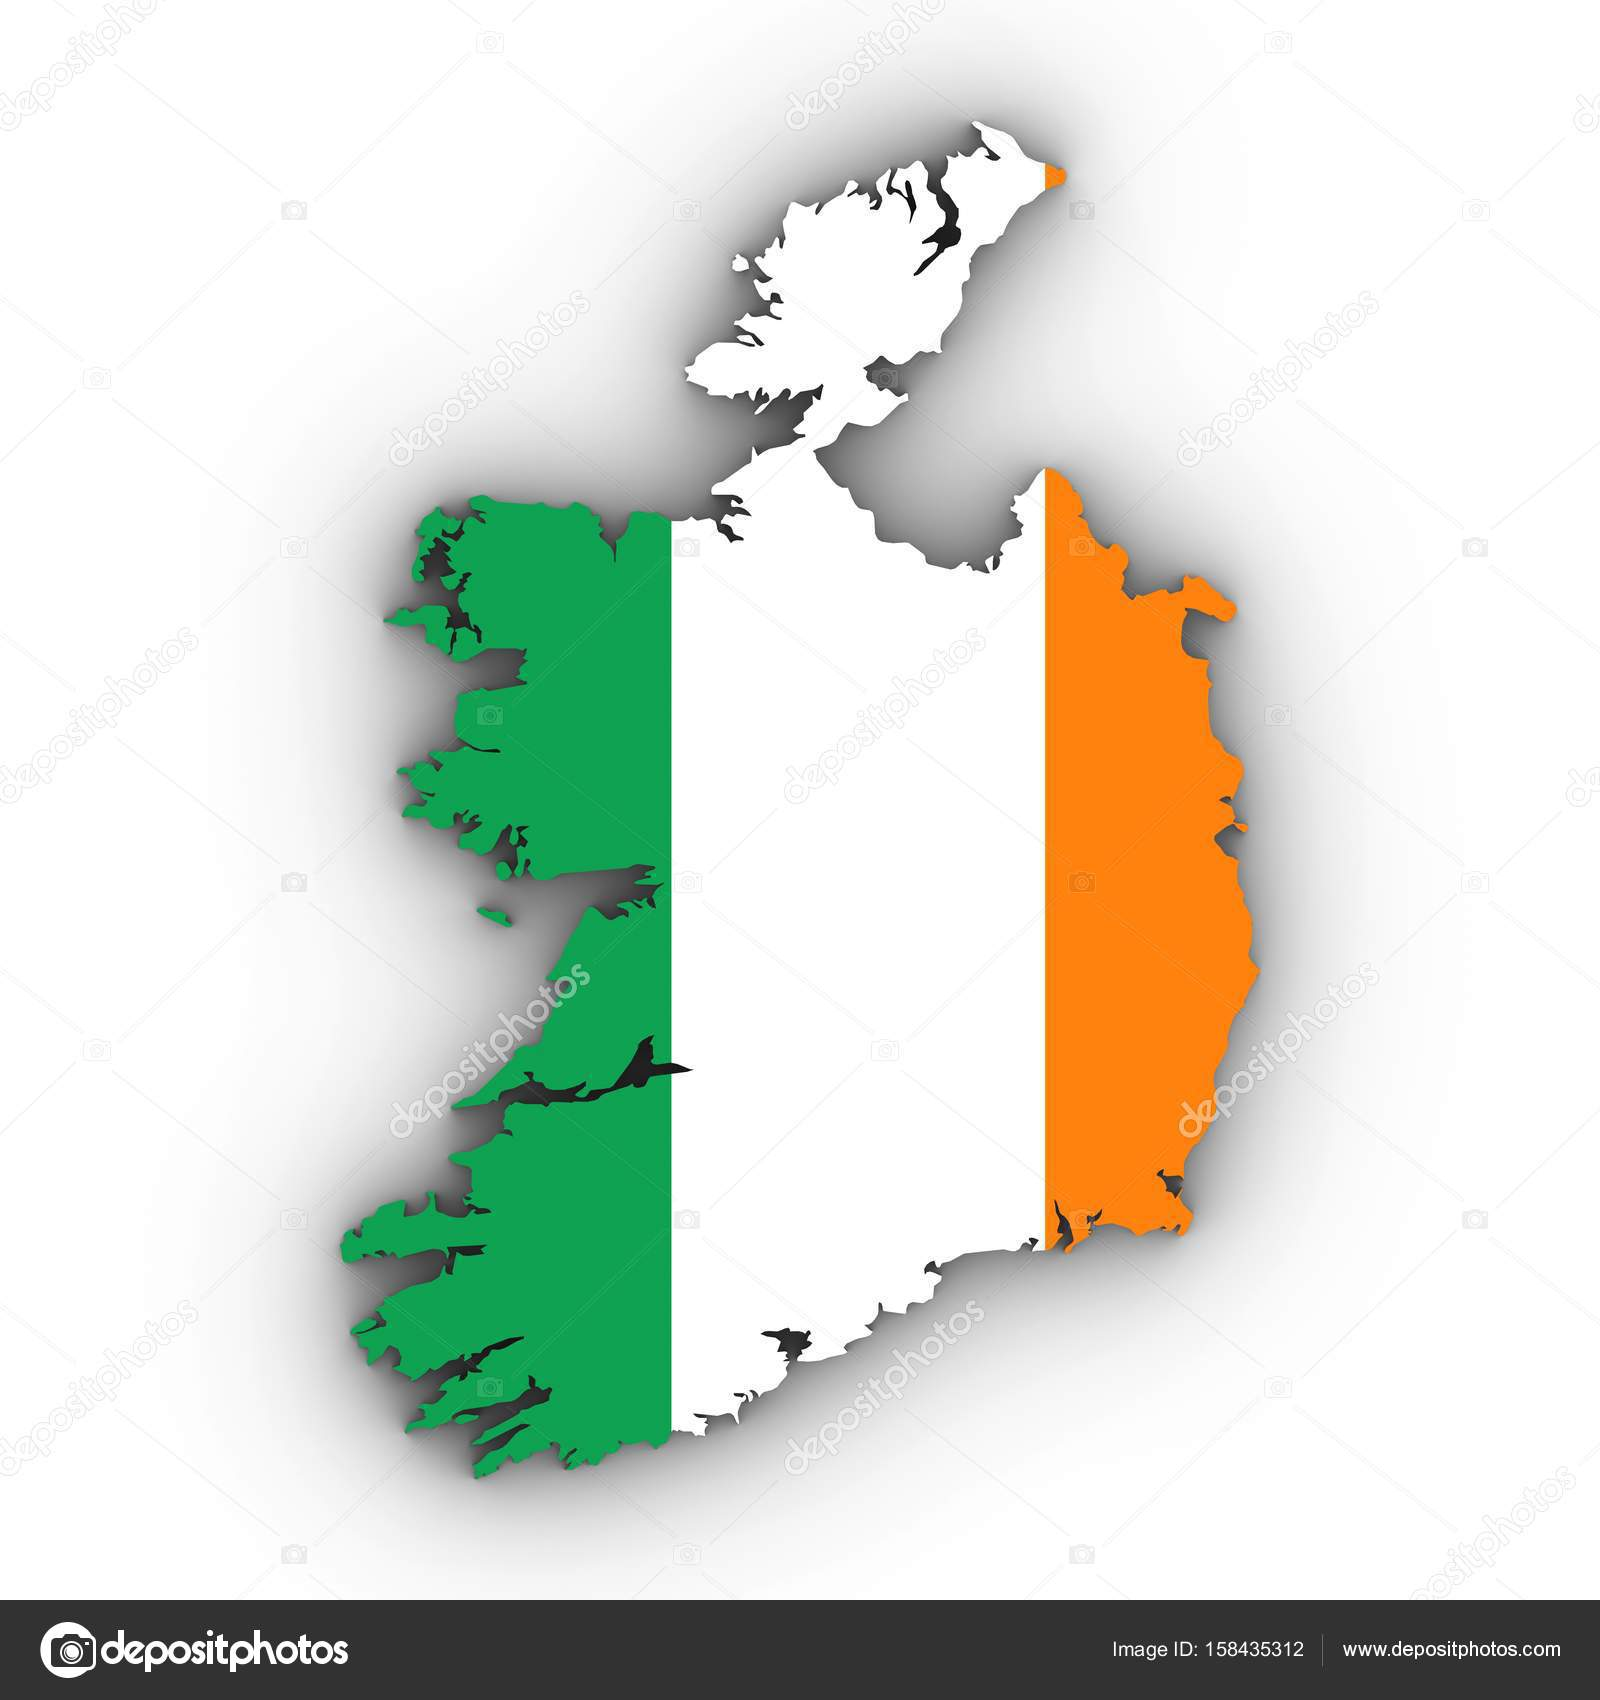 Outline Map Of Ireland.Ireland Map Outline With Irish Flag On White With Shadows 3d Ill